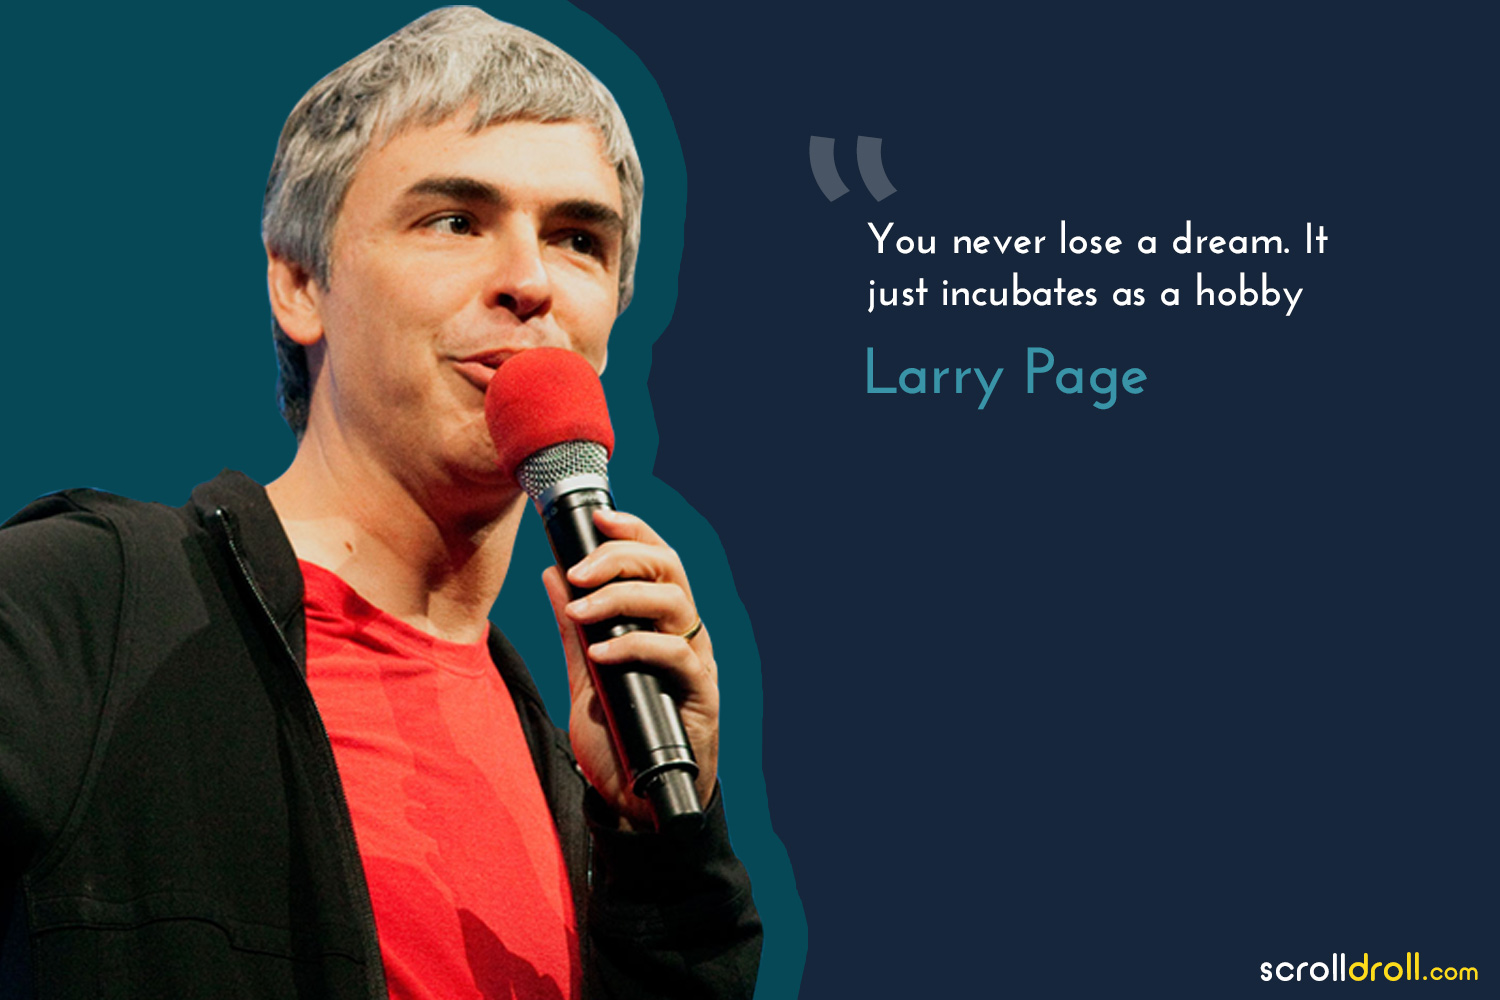 Powerful Quotes By Successful People- quote by larry page